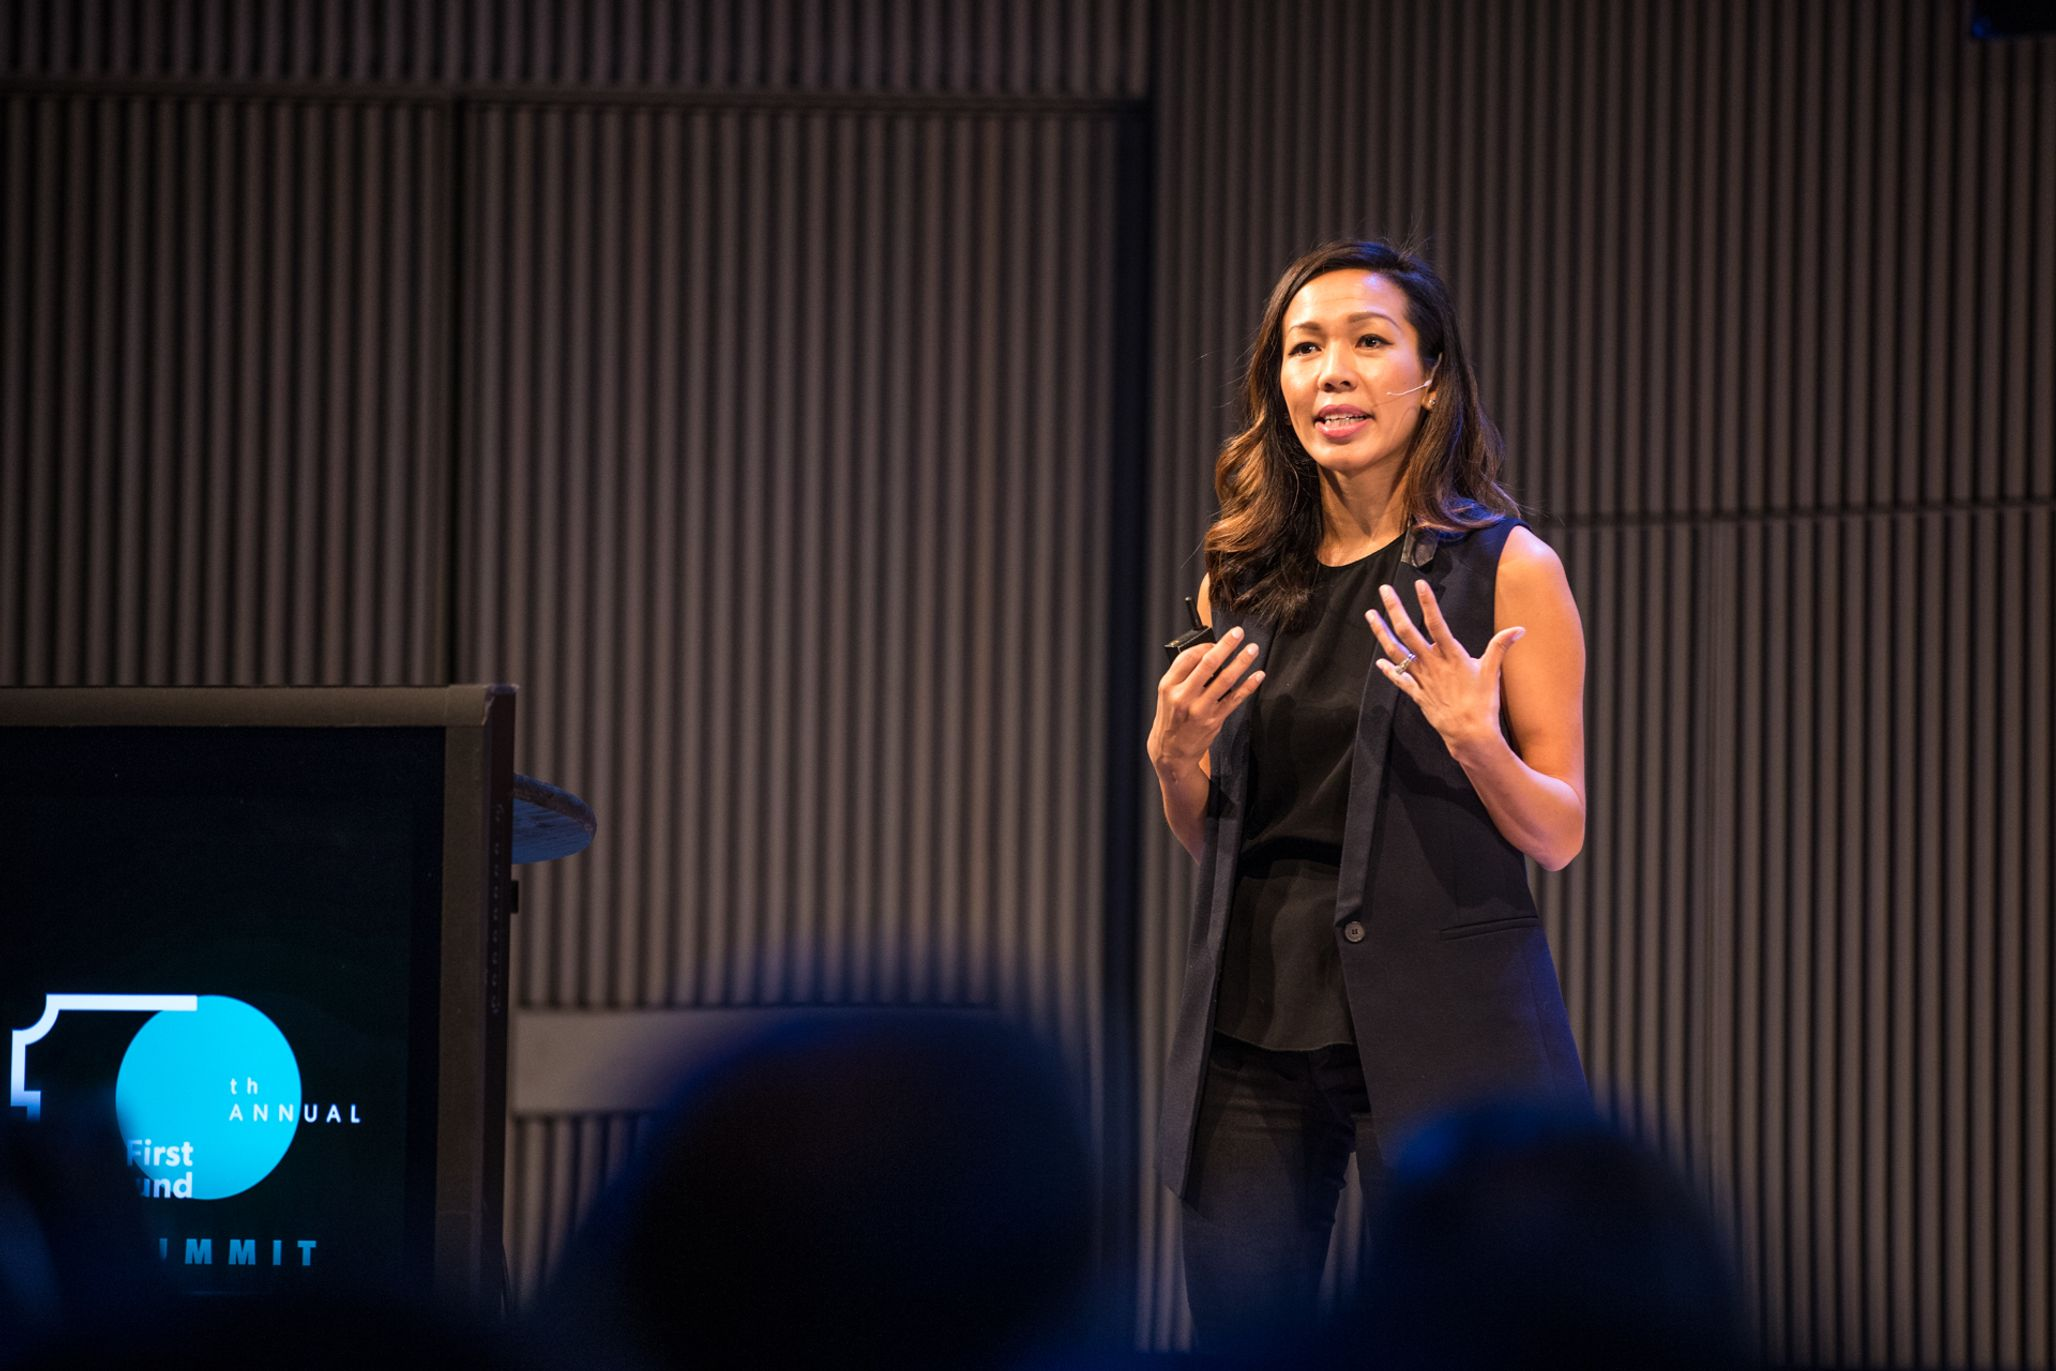 Florence Thinh Chialtas, VP of People Operations at NerdWallet